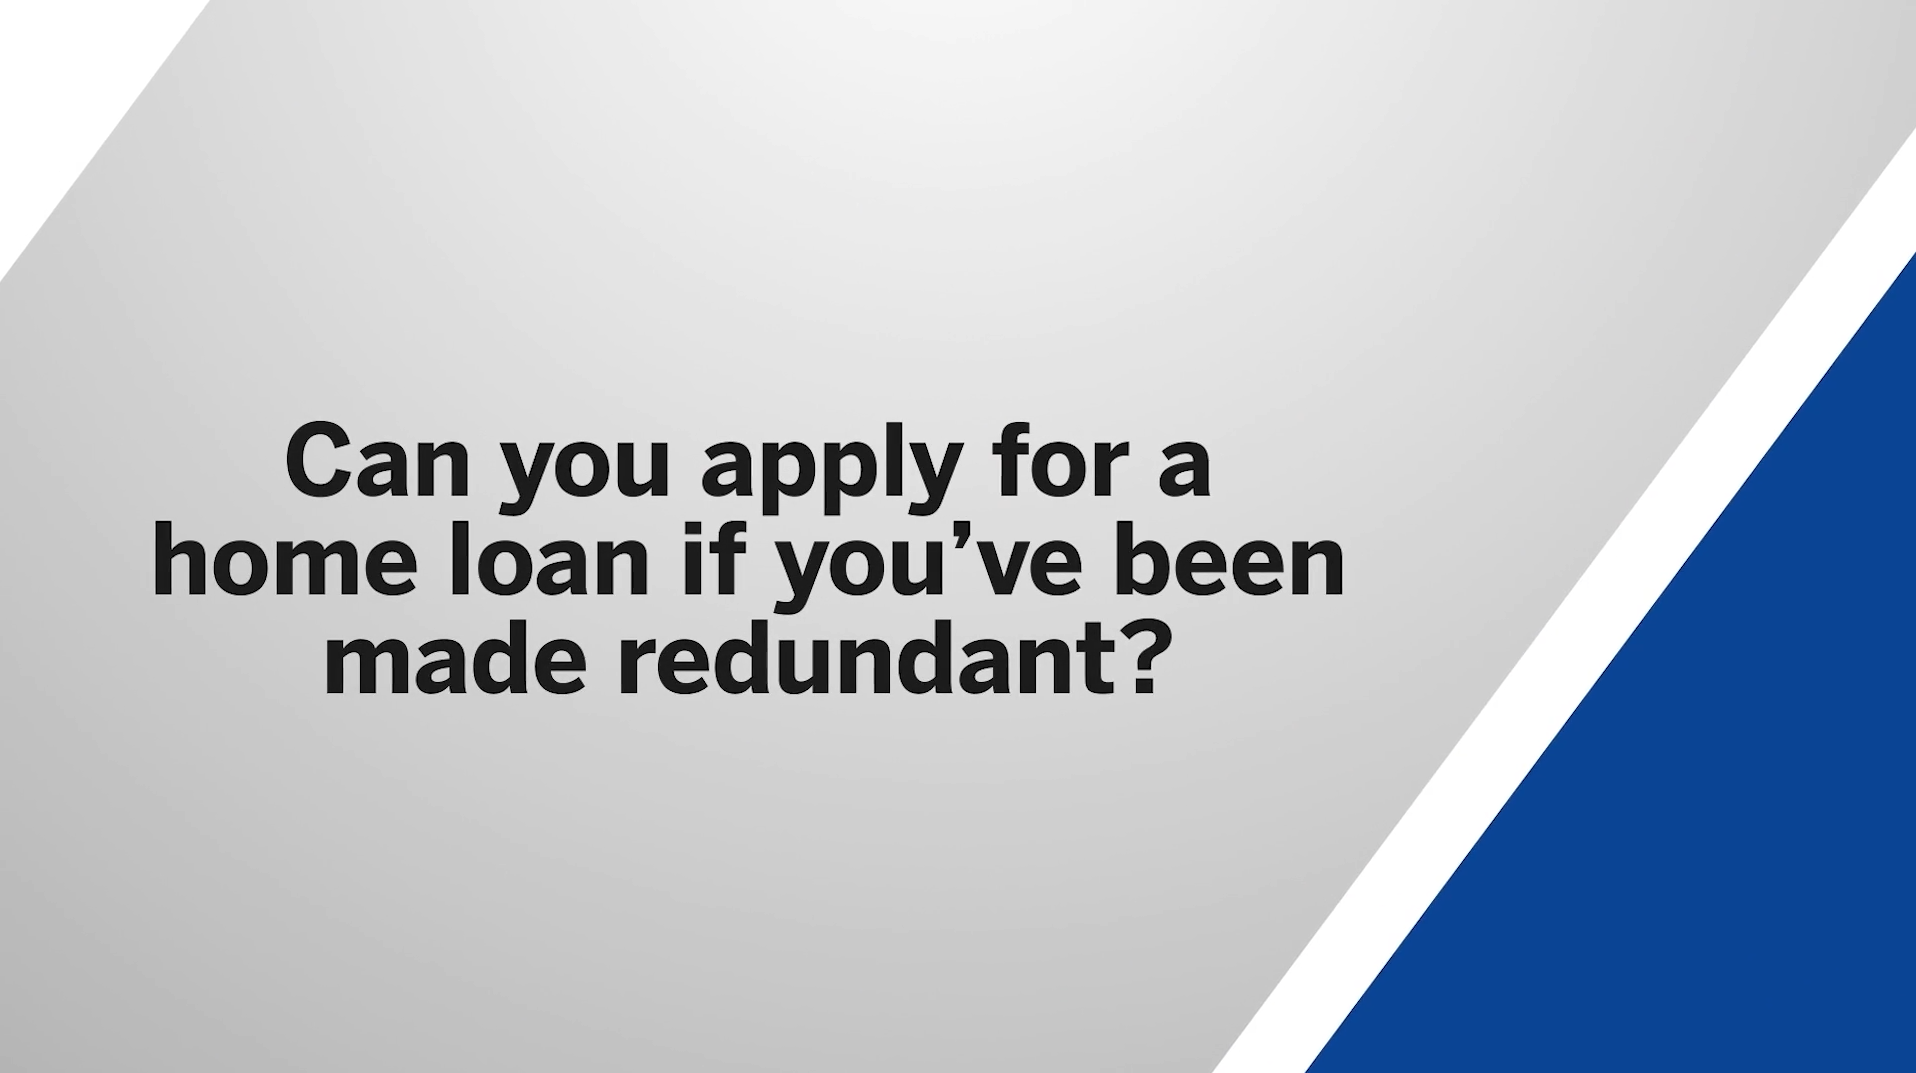 Can you apply for a home loan if you've been made redundant?